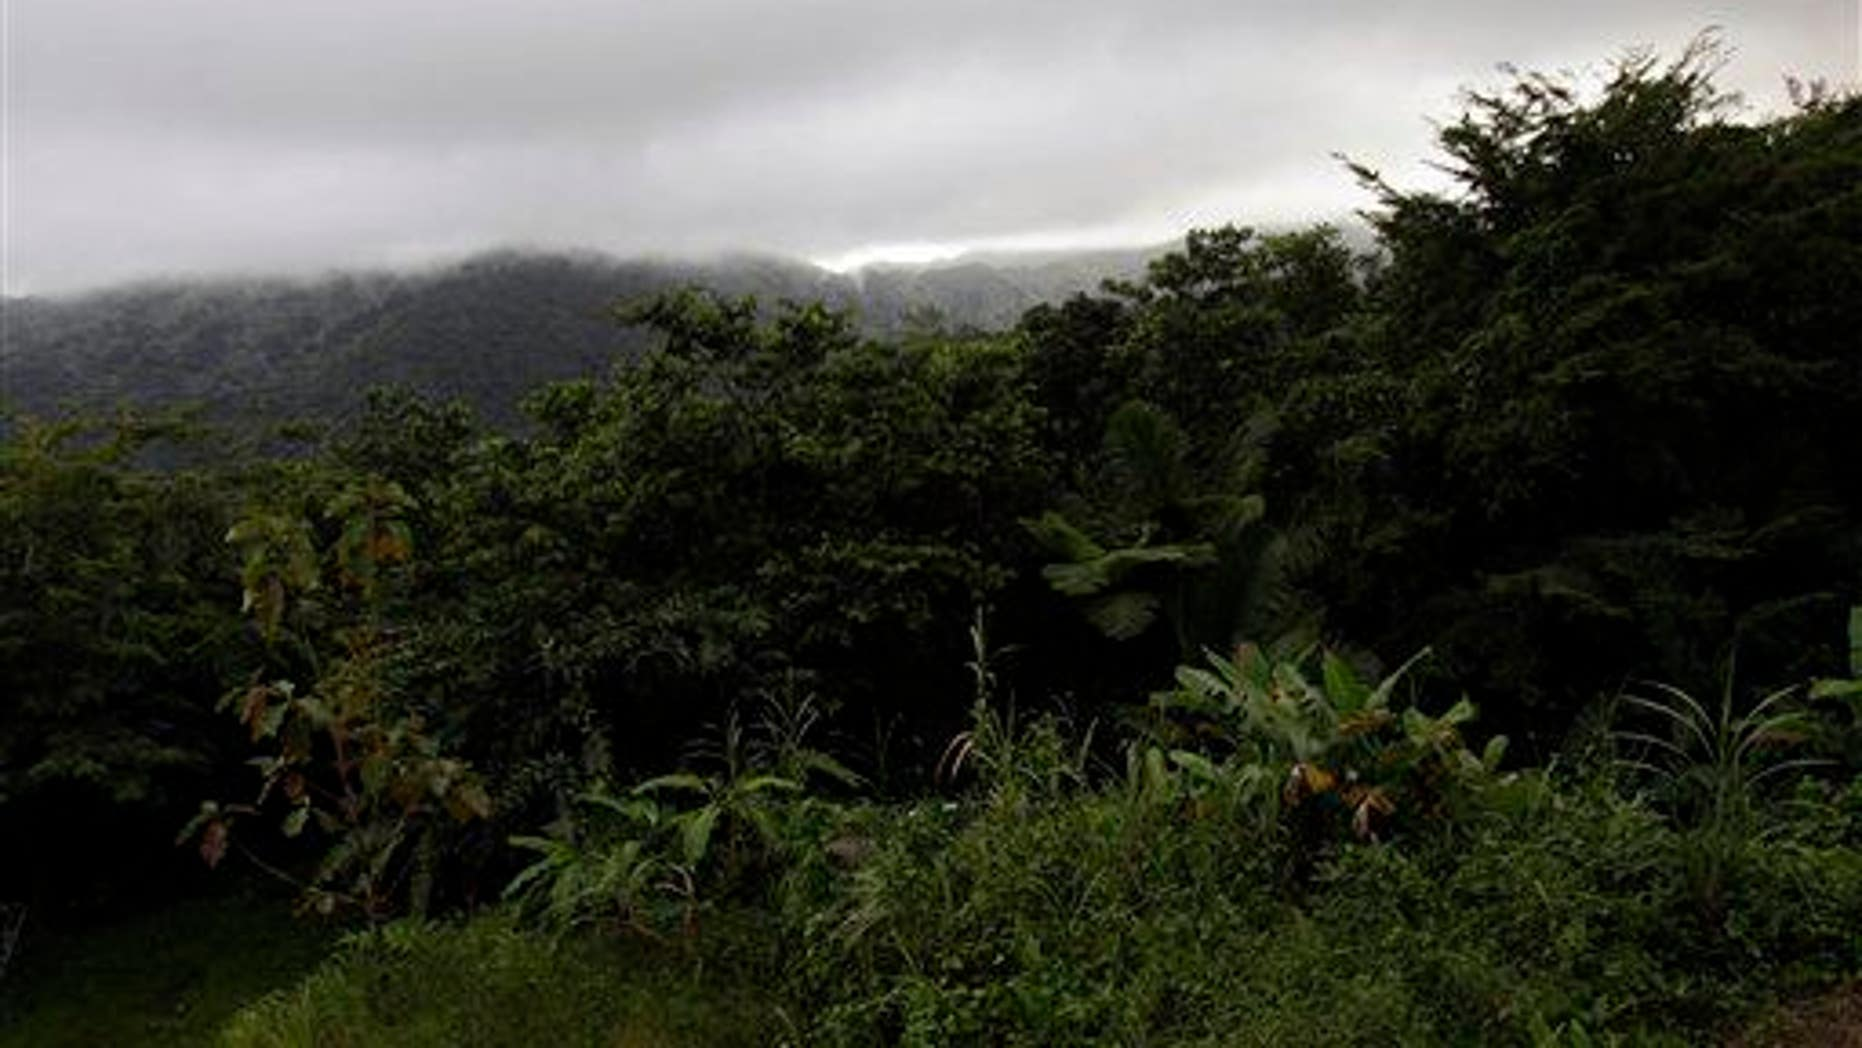 A dense cloud covers the top of El Yunque mountain in Puerto Rico.